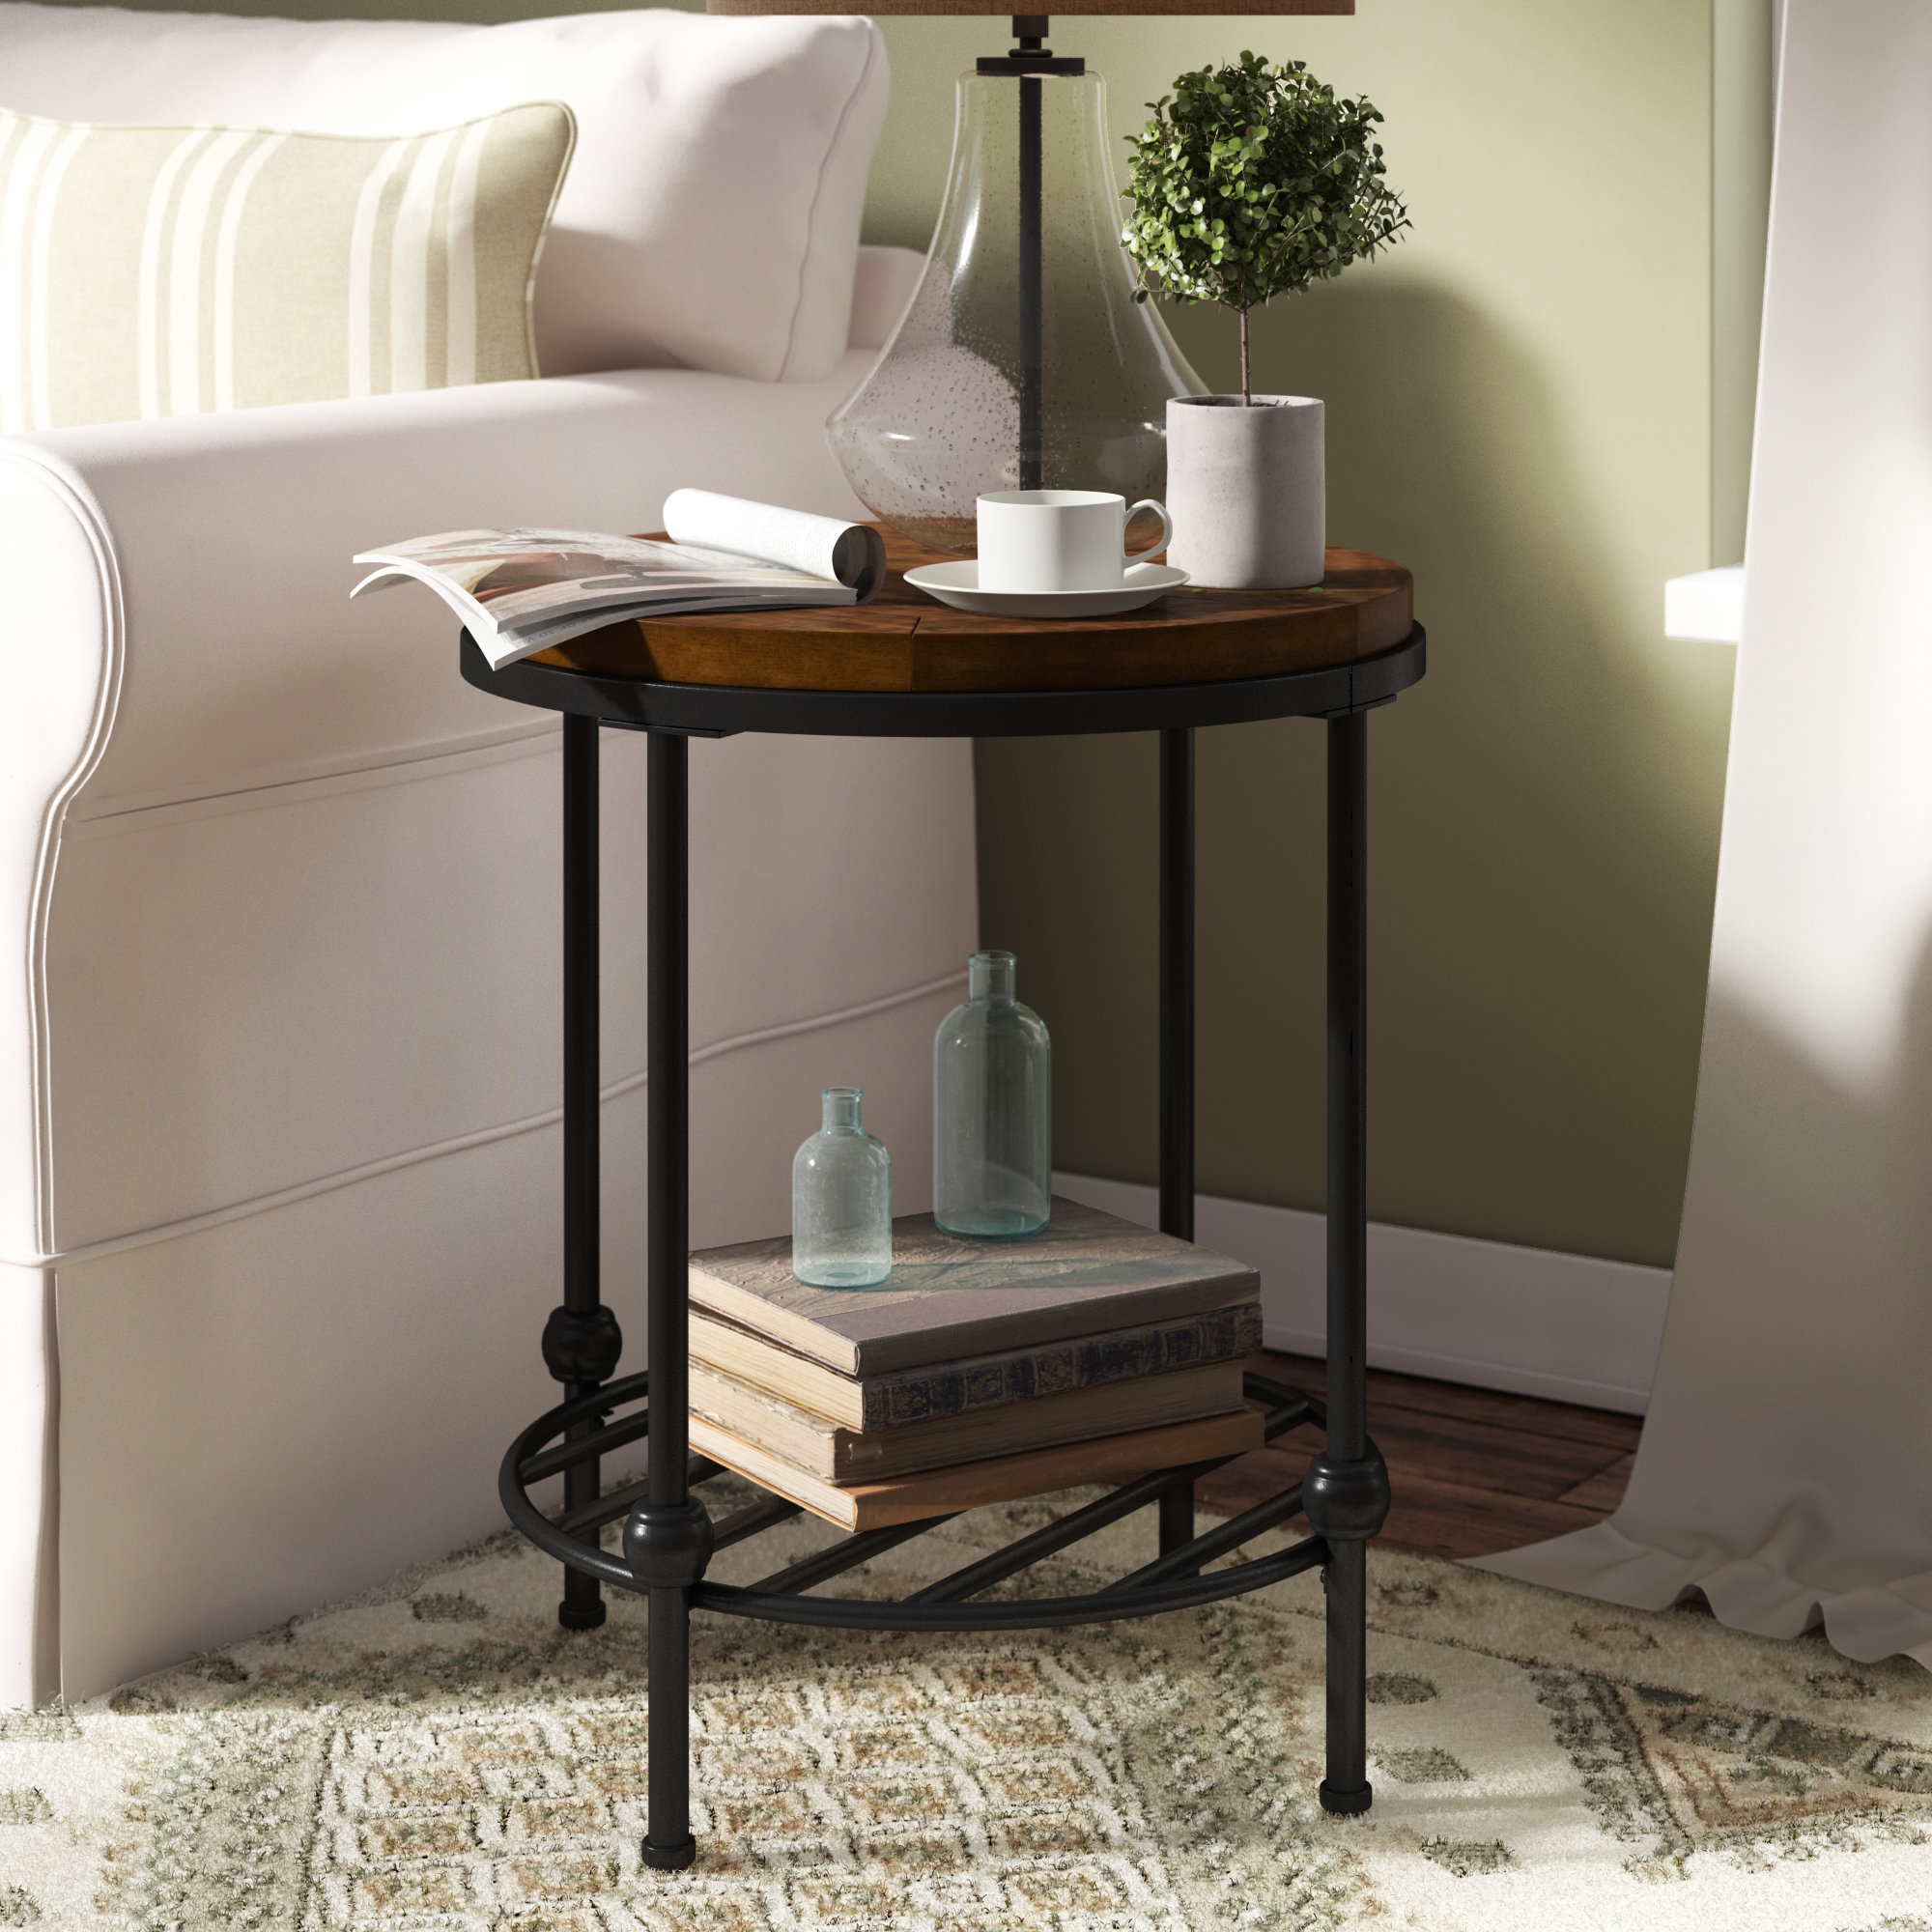 stellan end table reviews birch lane room essentials stacking accent tiffany globe lamp tall white nightstand coffee runner wooden plans best home decor ping websites ikea glass